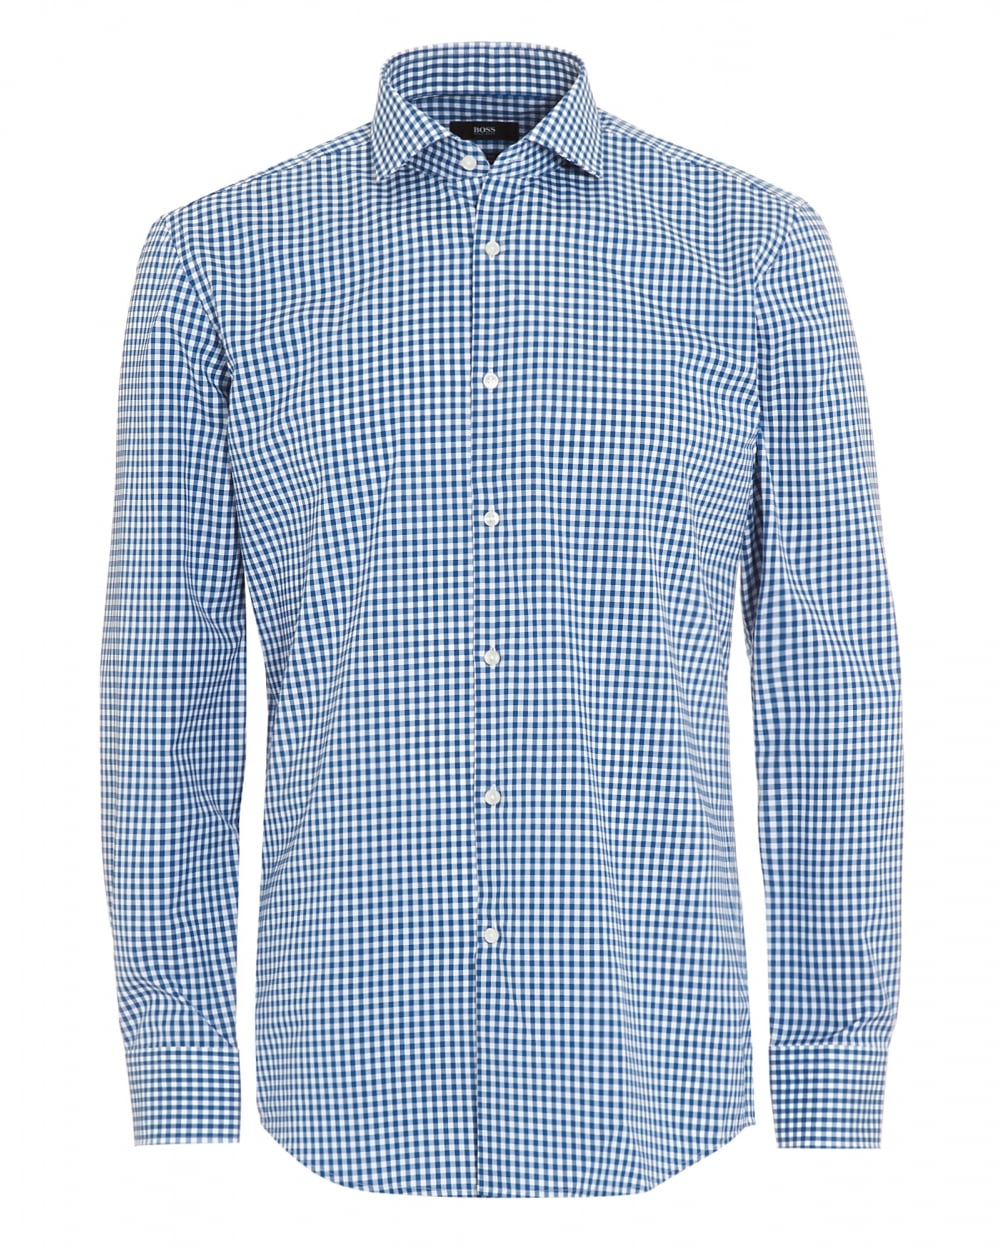 Mens Blue White Gingham Check Jason Shirt